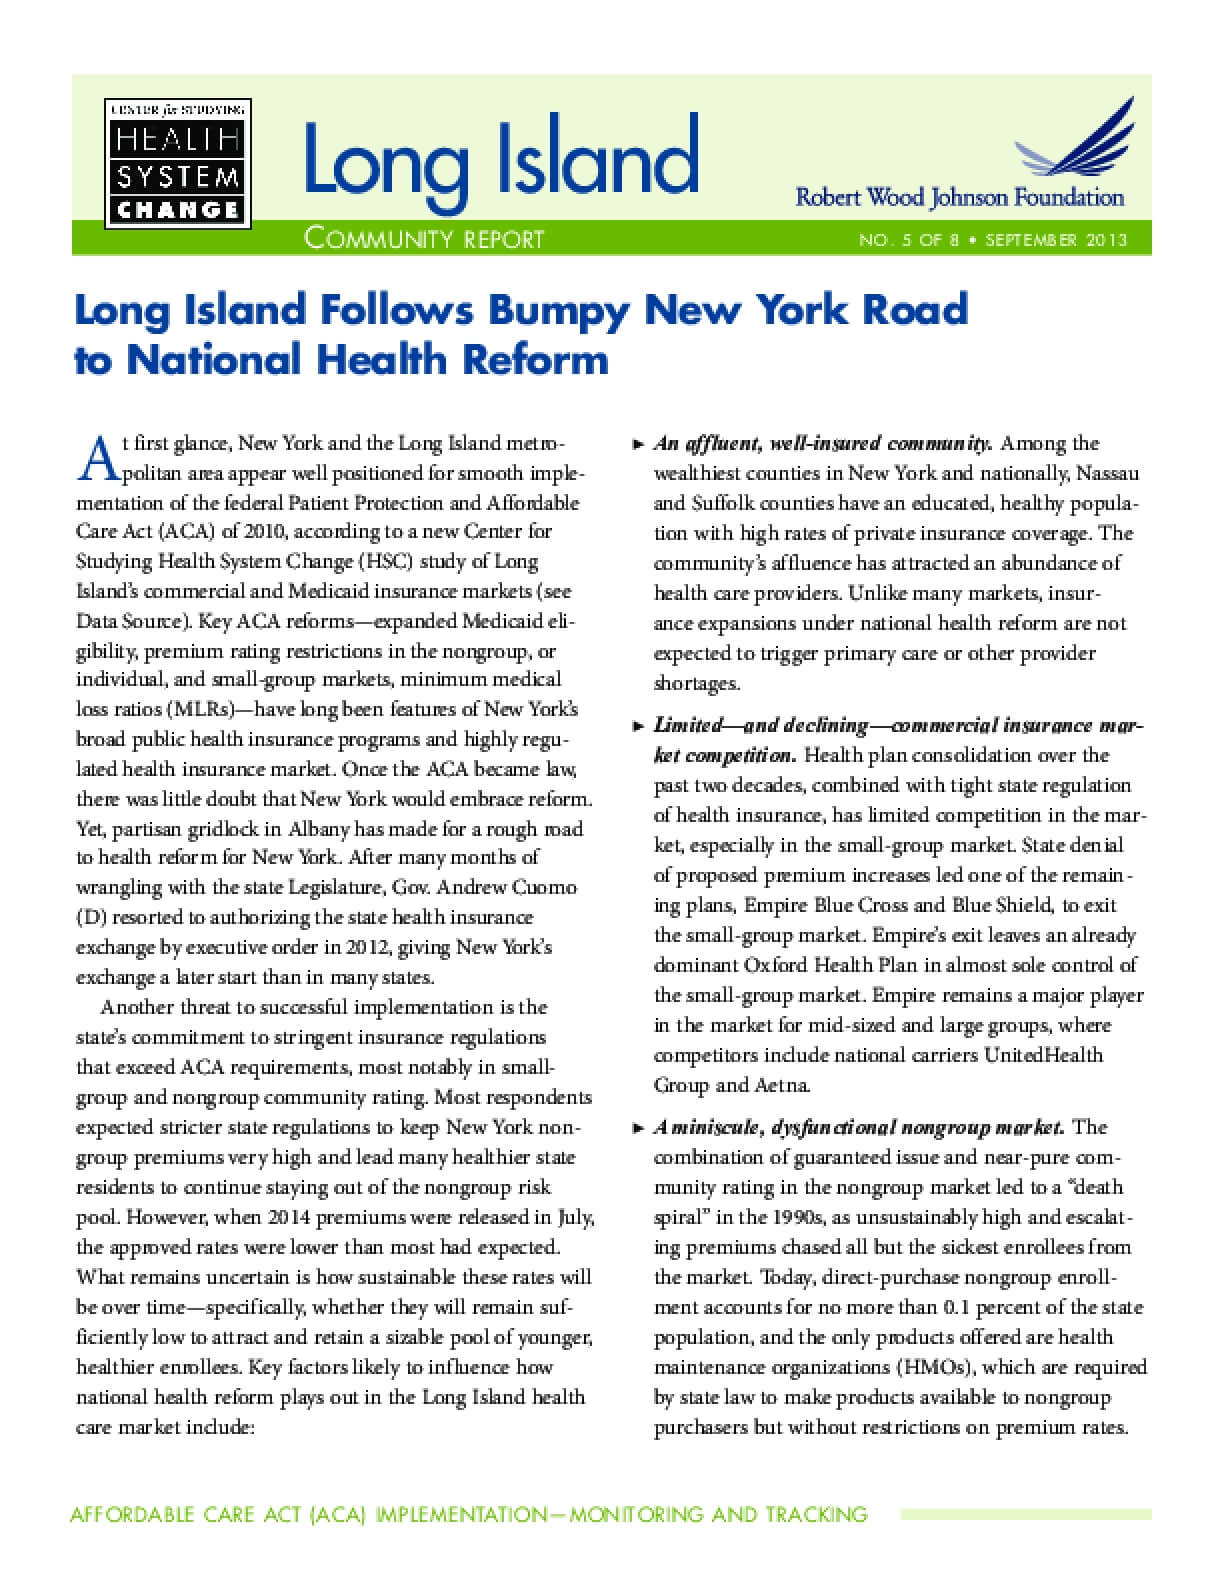 Long Island Follows Bumpy New York Road to National Health Reform